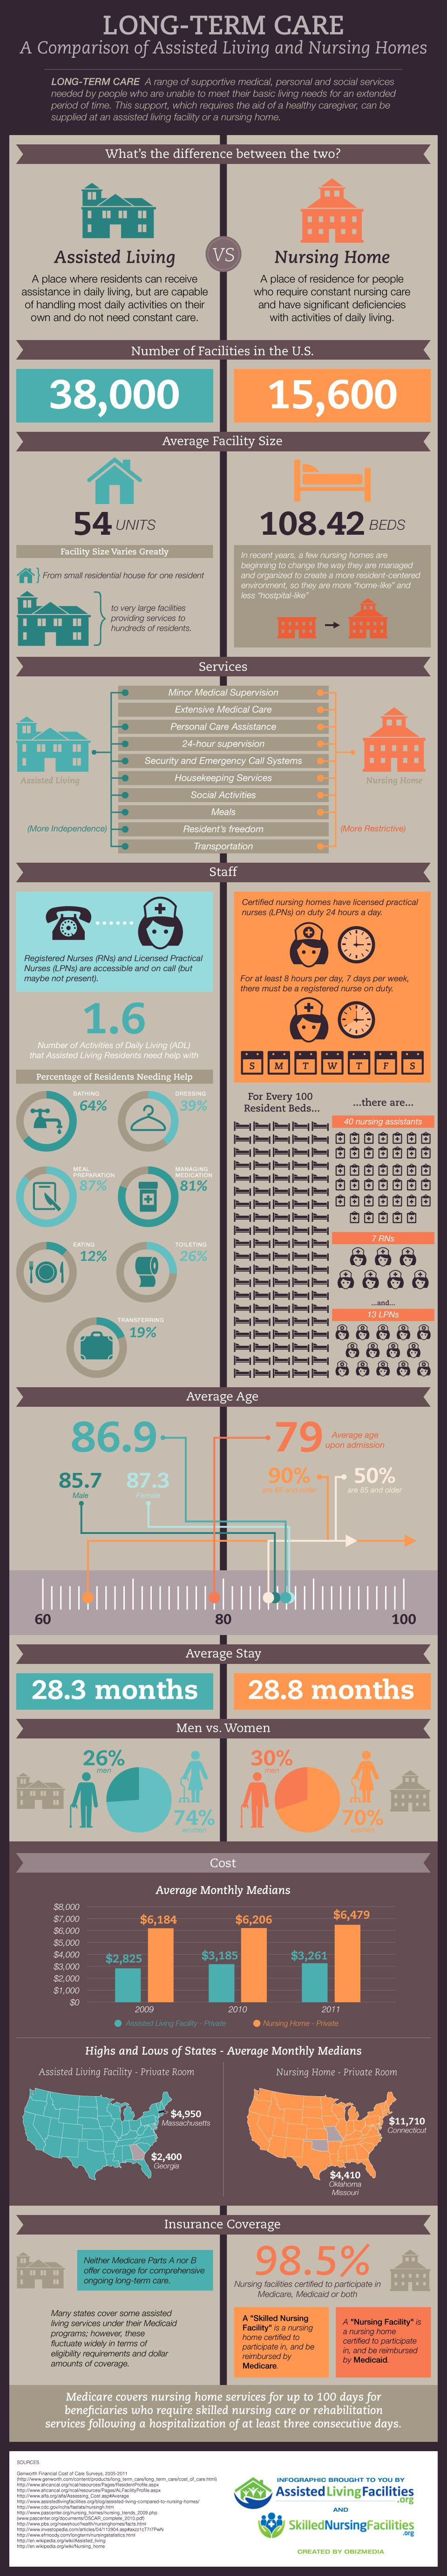 This infographic provides a detailed comparison of